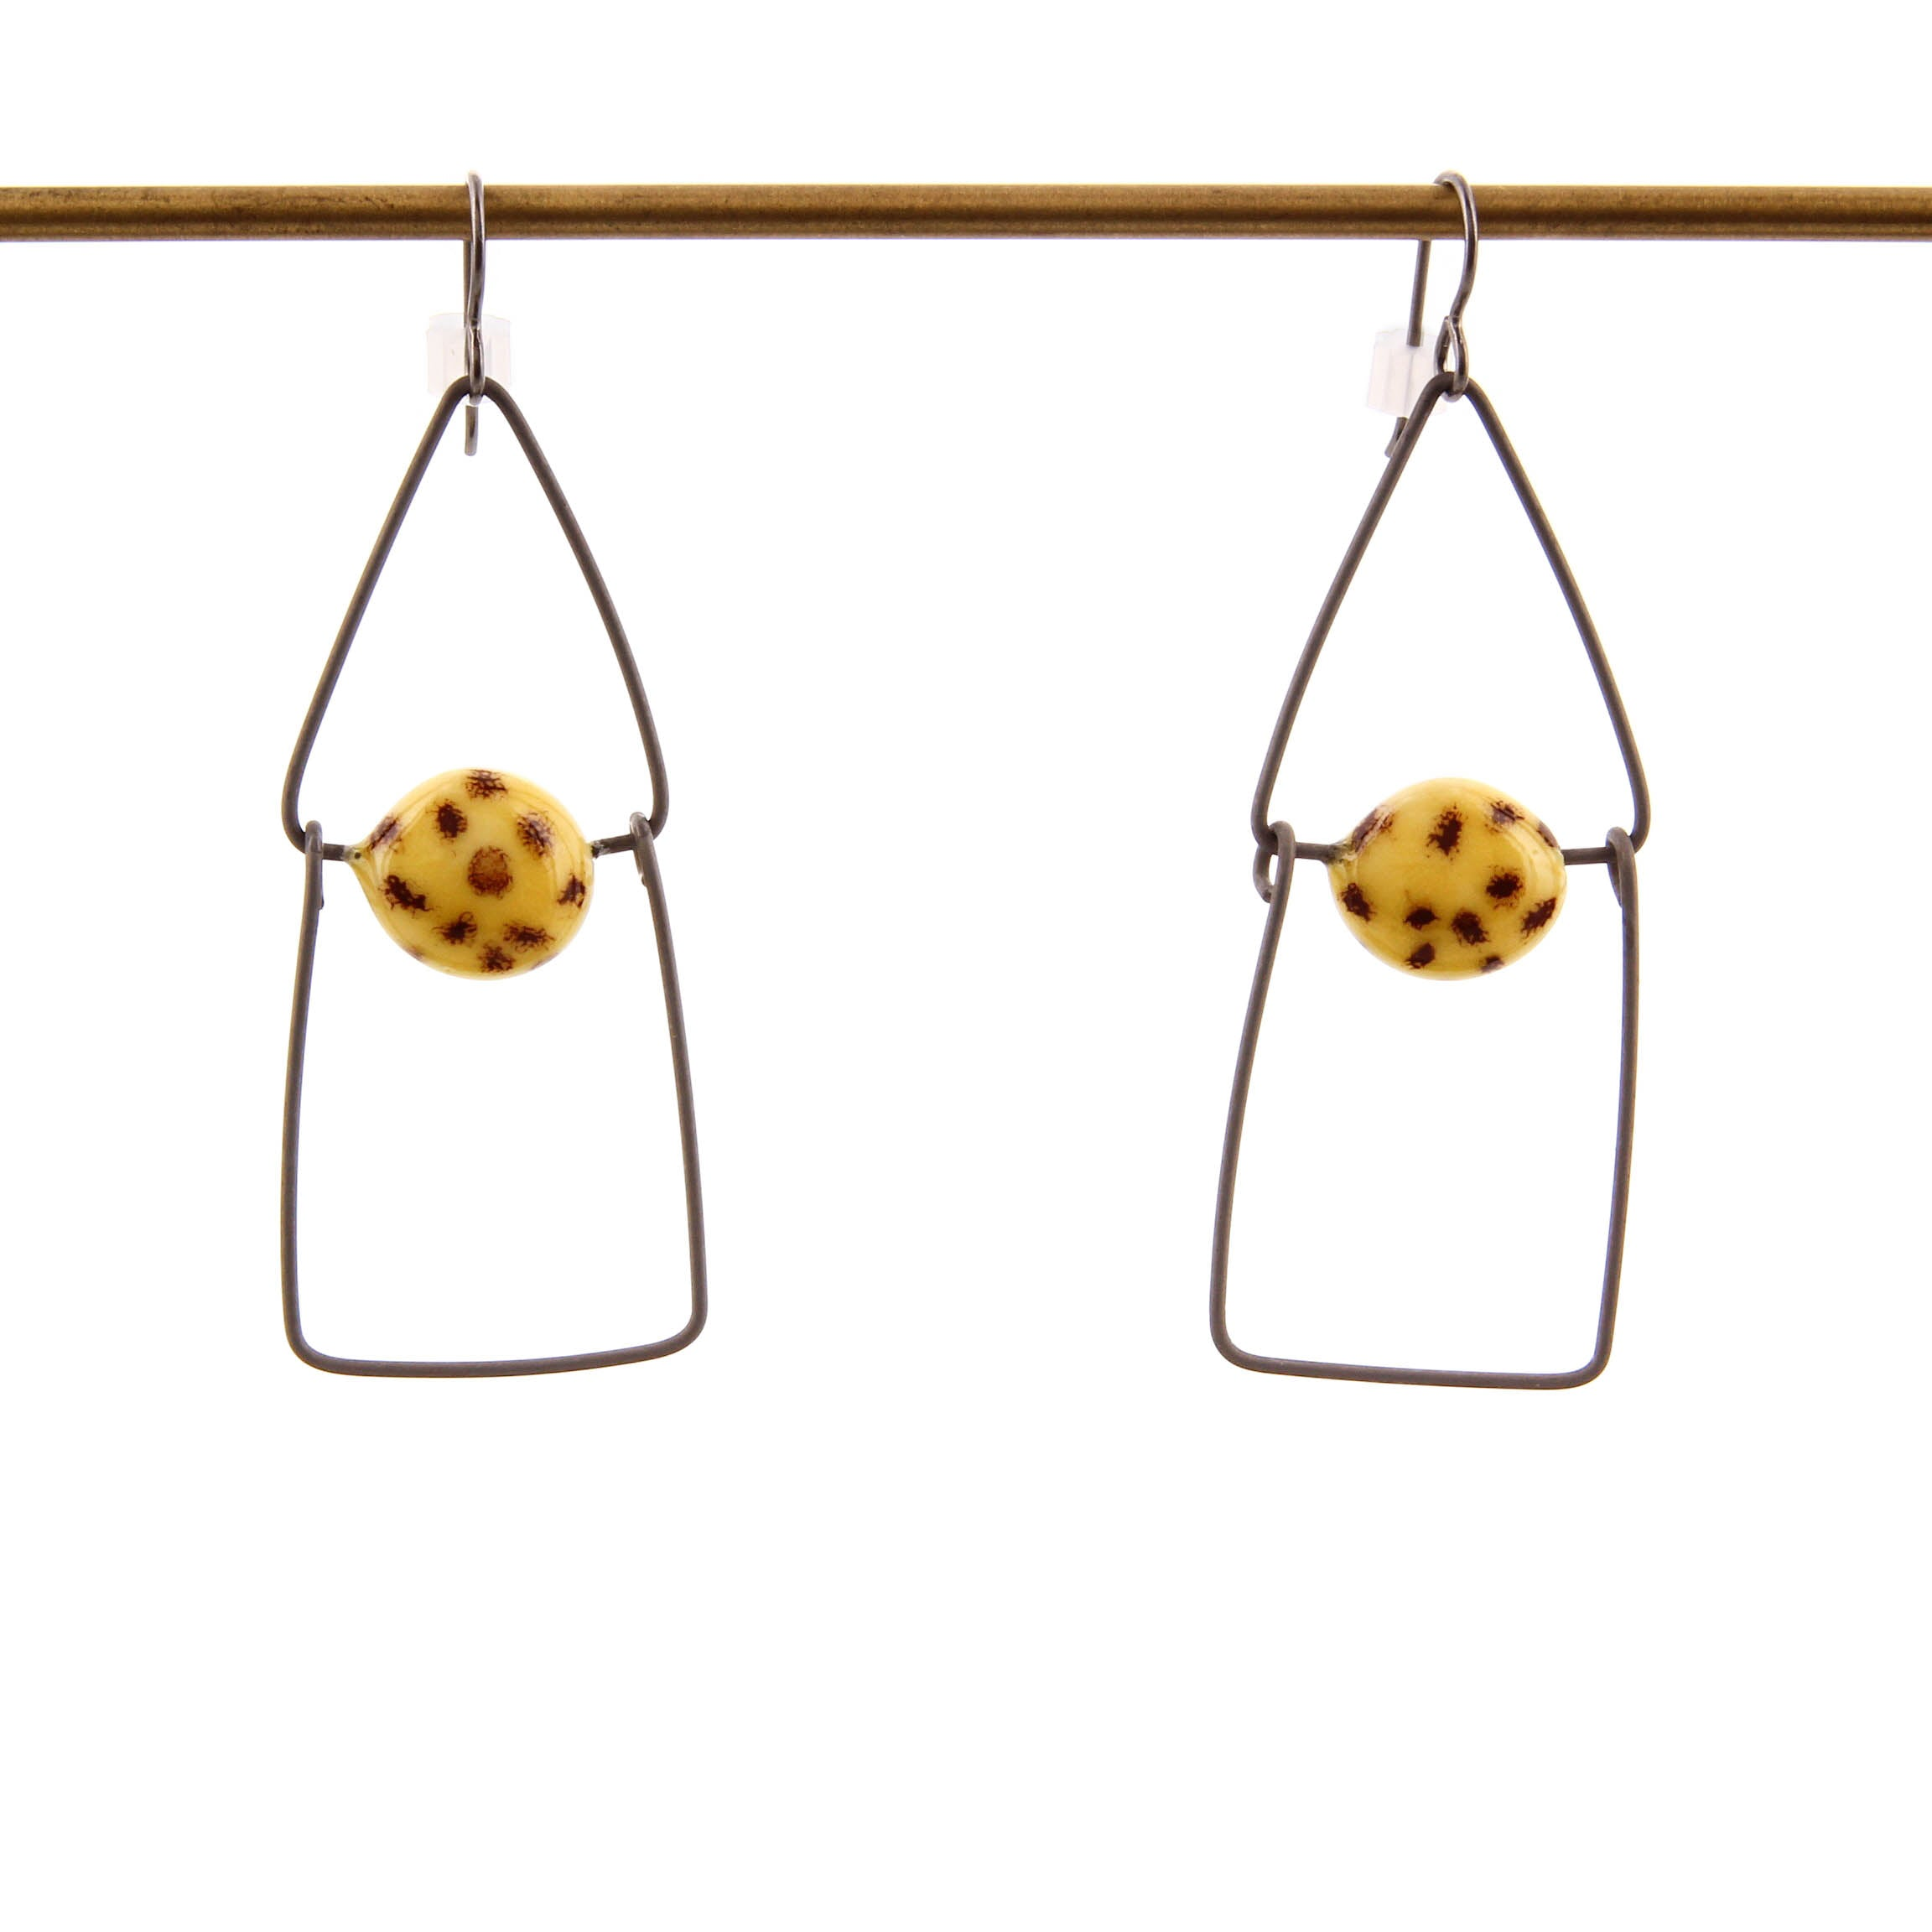 Jennifer Allen, Ceramic and Metal Earrings in Yellow